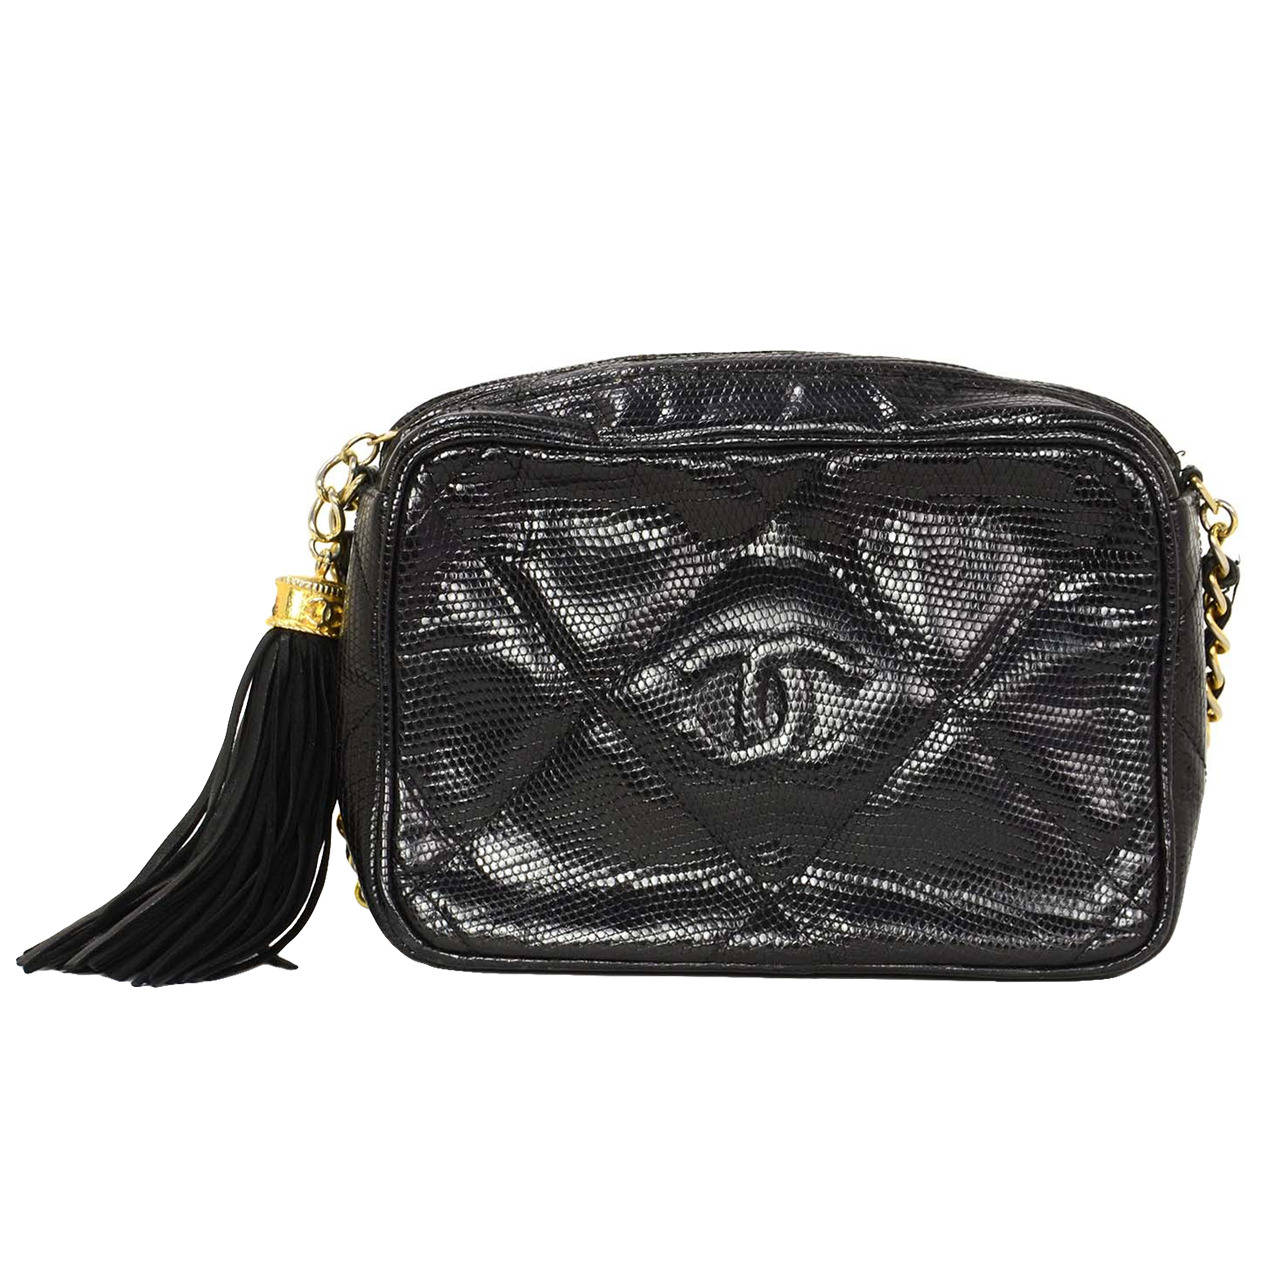 12e26d701837 CHANEL '80s Vintage Black Lizard Quilted Camera Bag w/ Tassel GHW For Sale